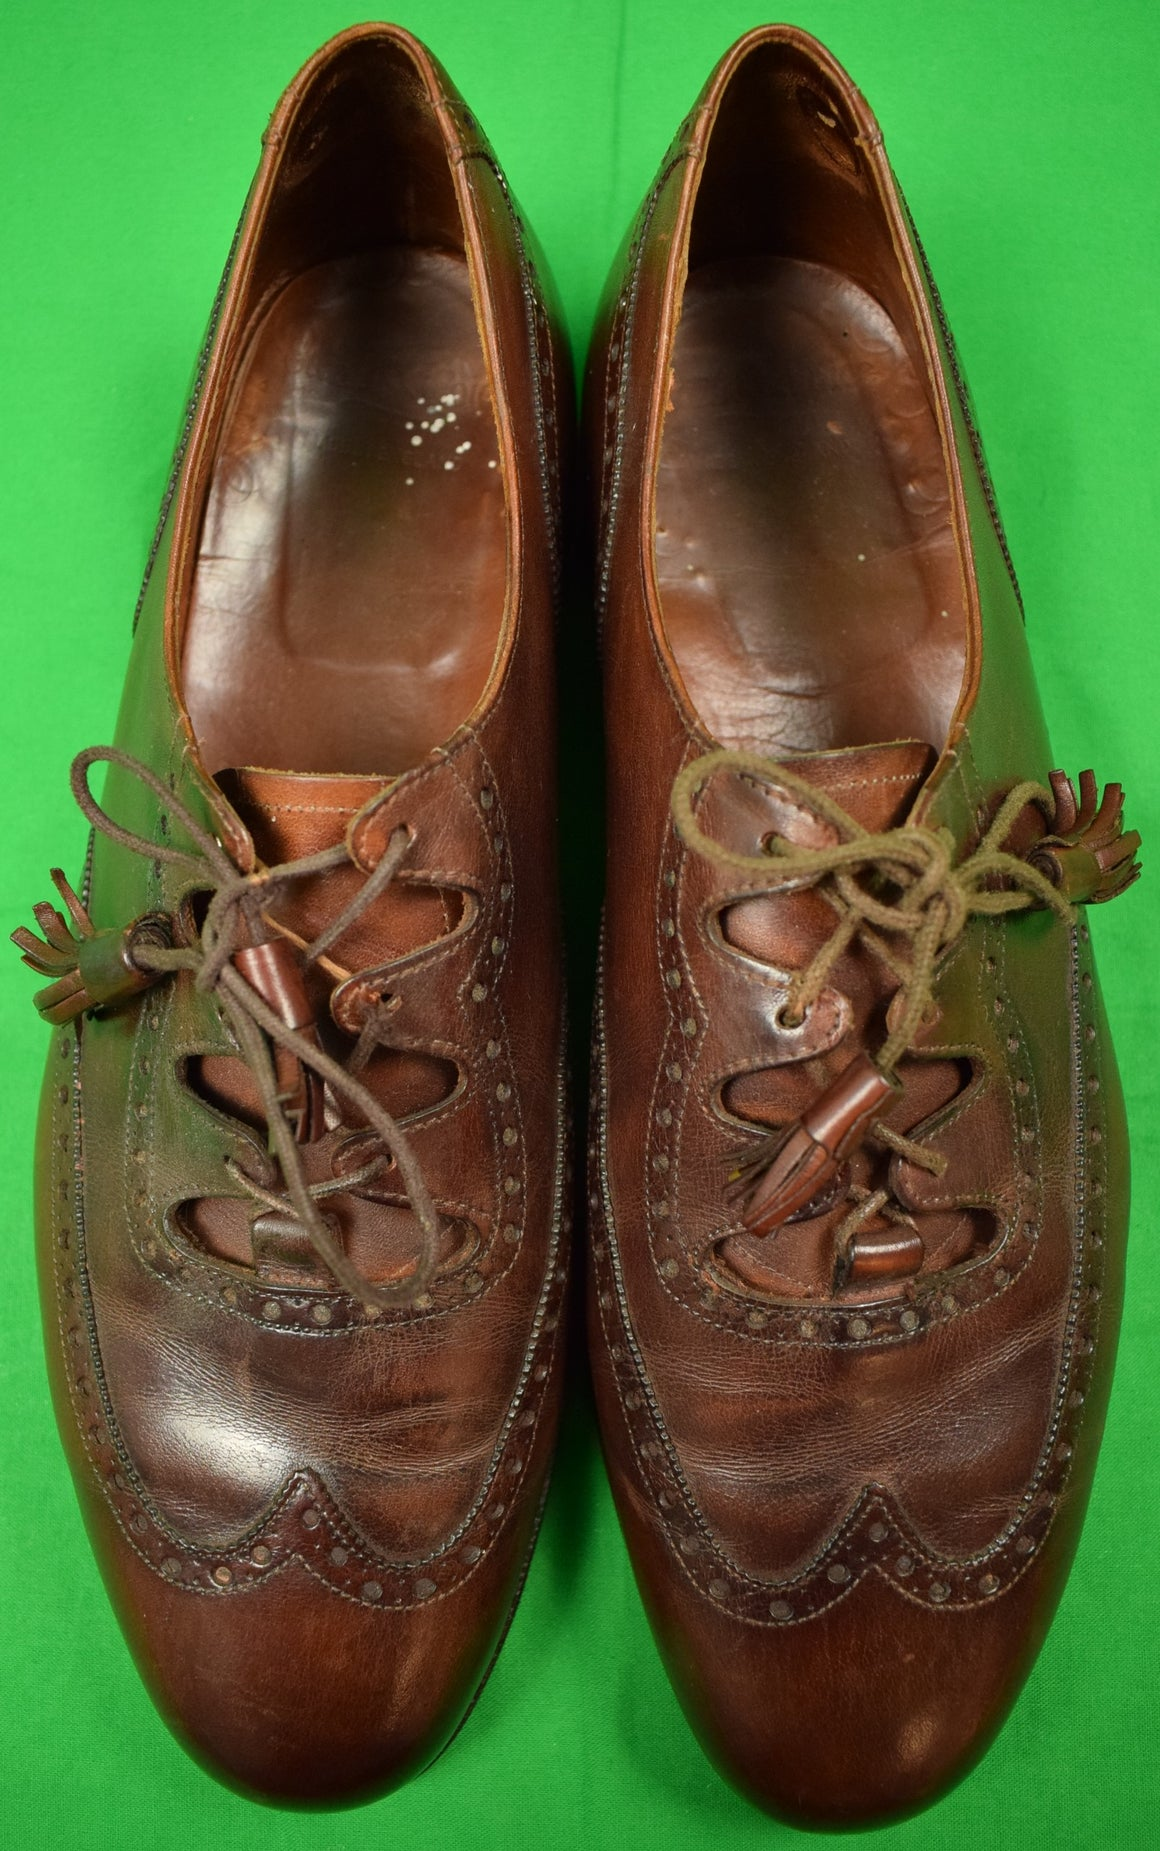 Pr of Paul Stuart English Ghillie 'Brogues' Sz 11-1/2 D